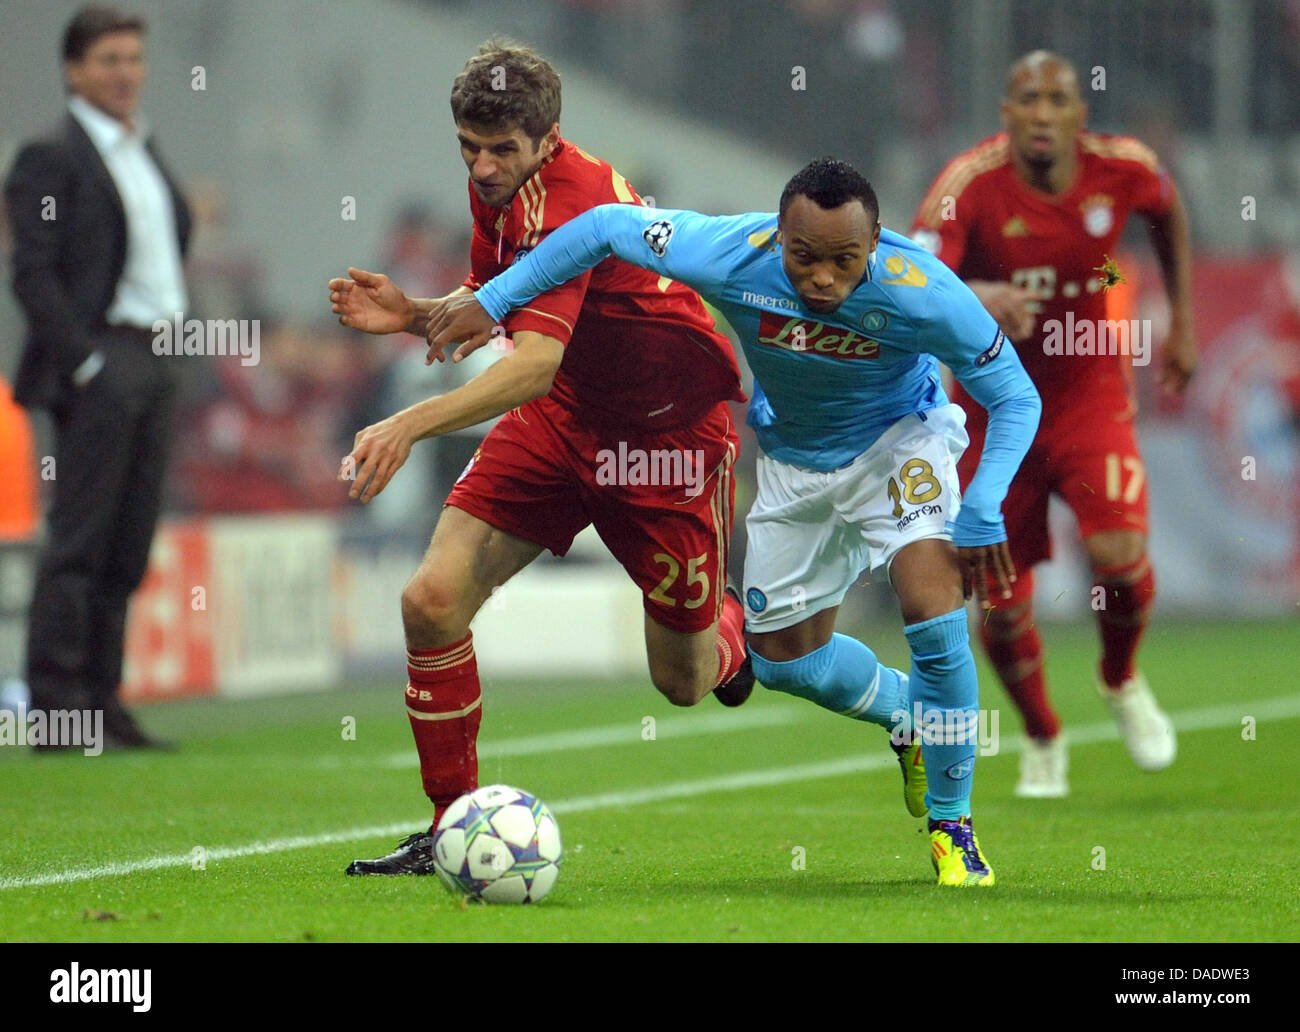 Munich s Thomas Müller L and Juan Zuniga of Naples fight for the